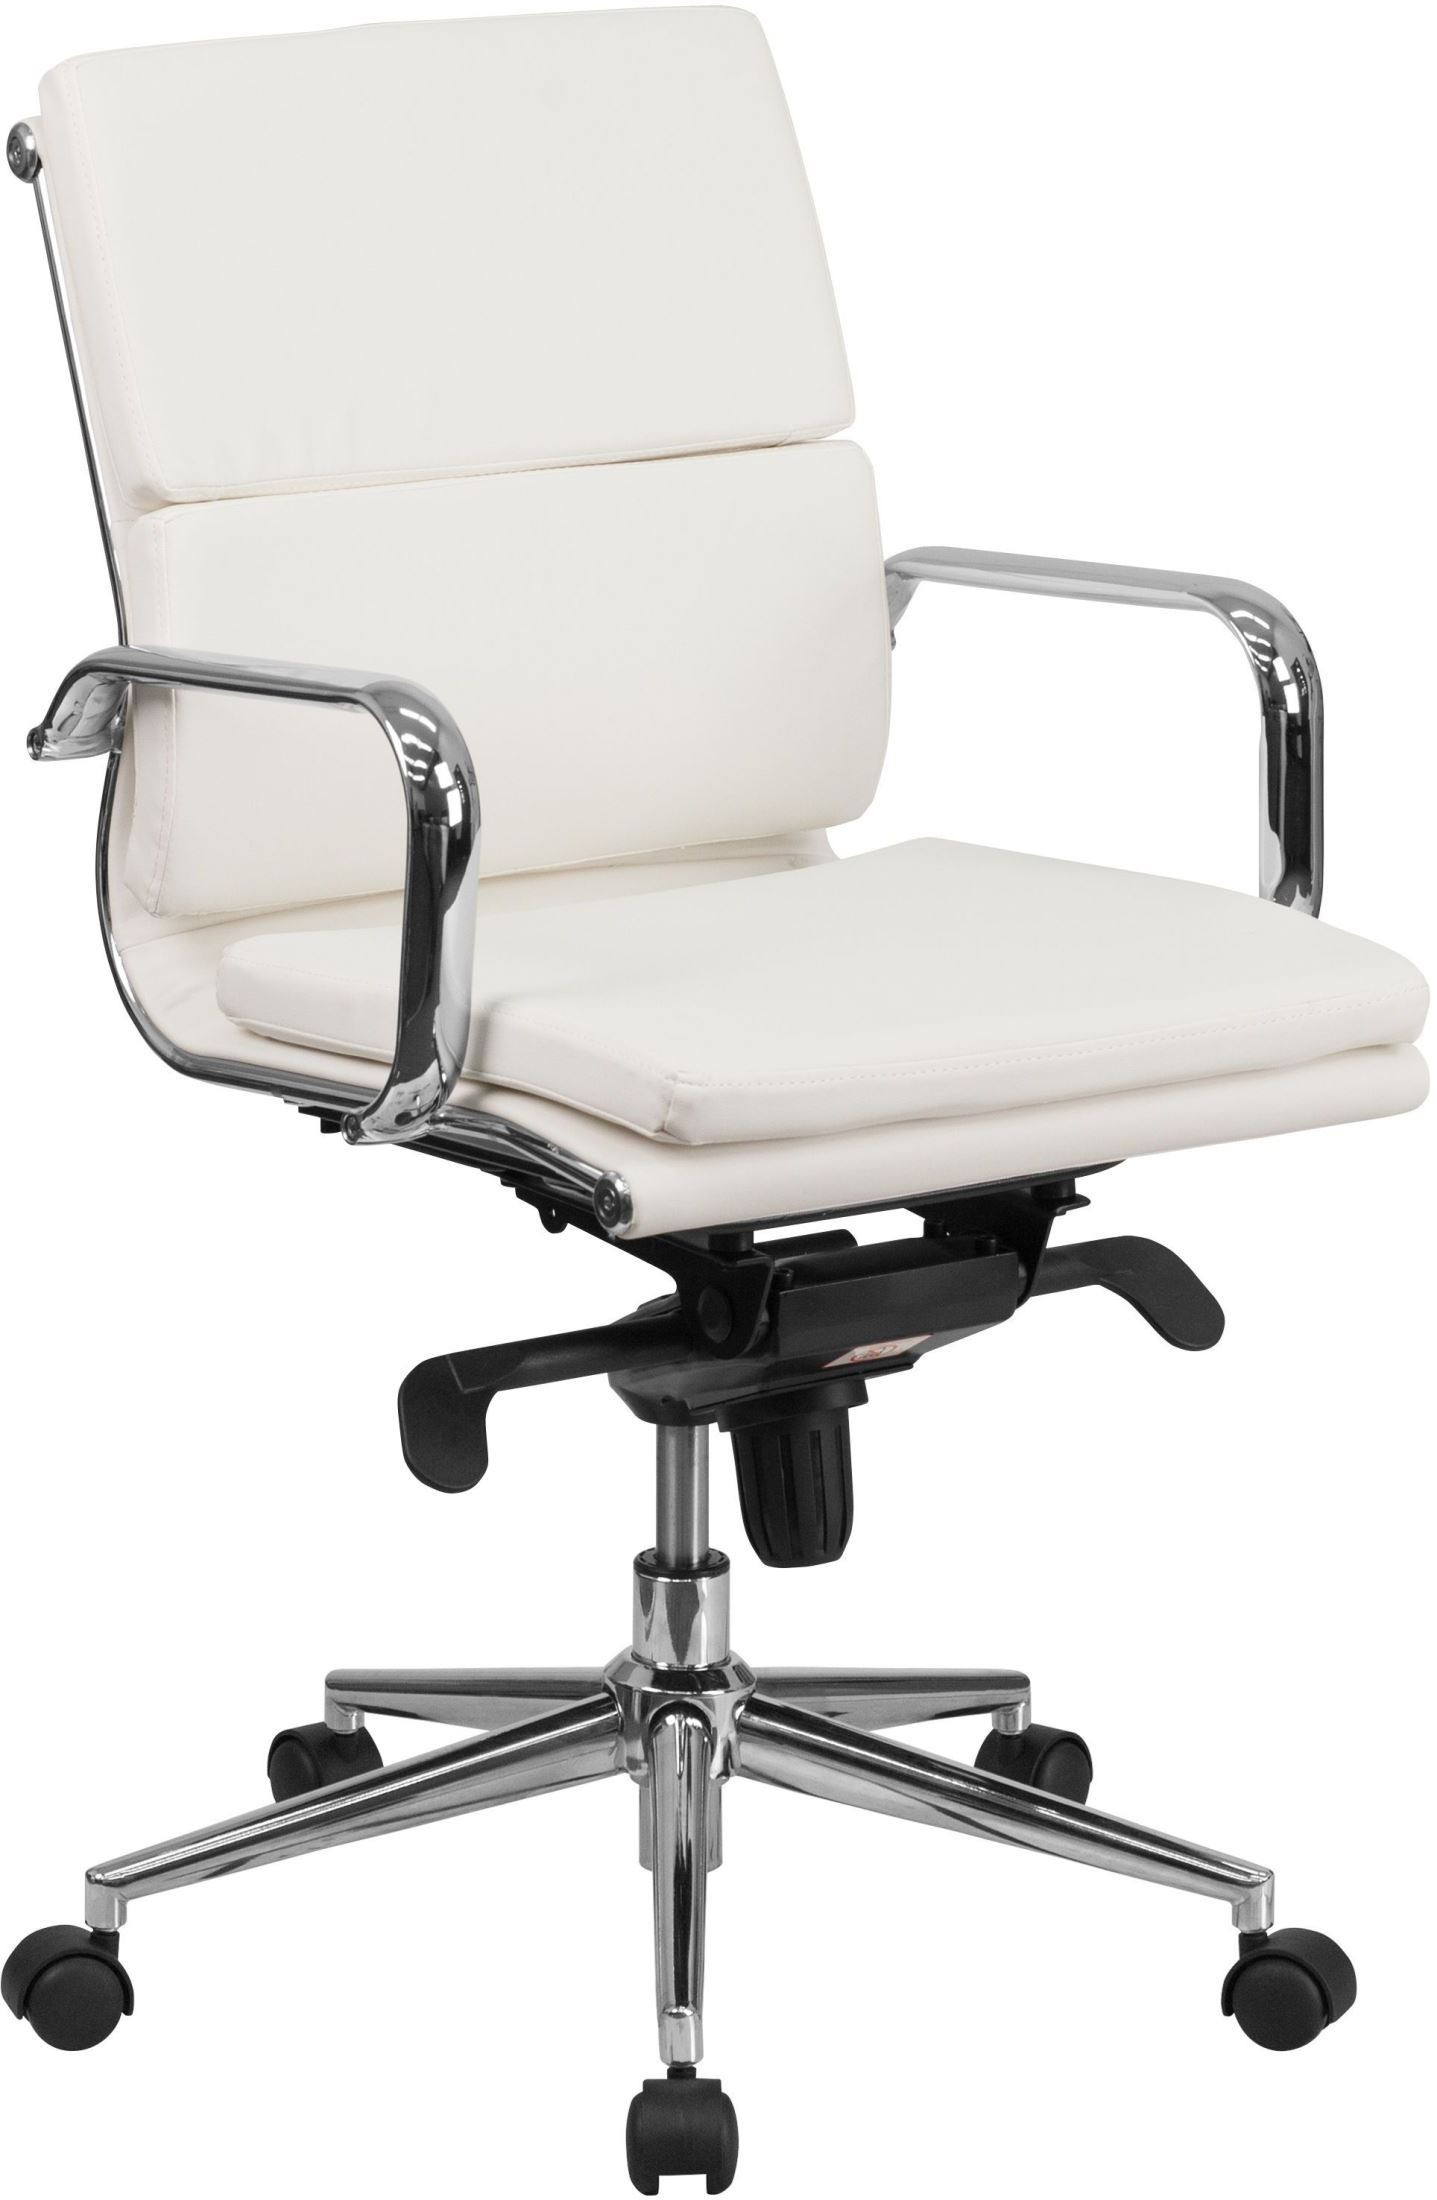 White Swivel Desk Chair White Executive Swivel Office Chair With Synchro Tilt